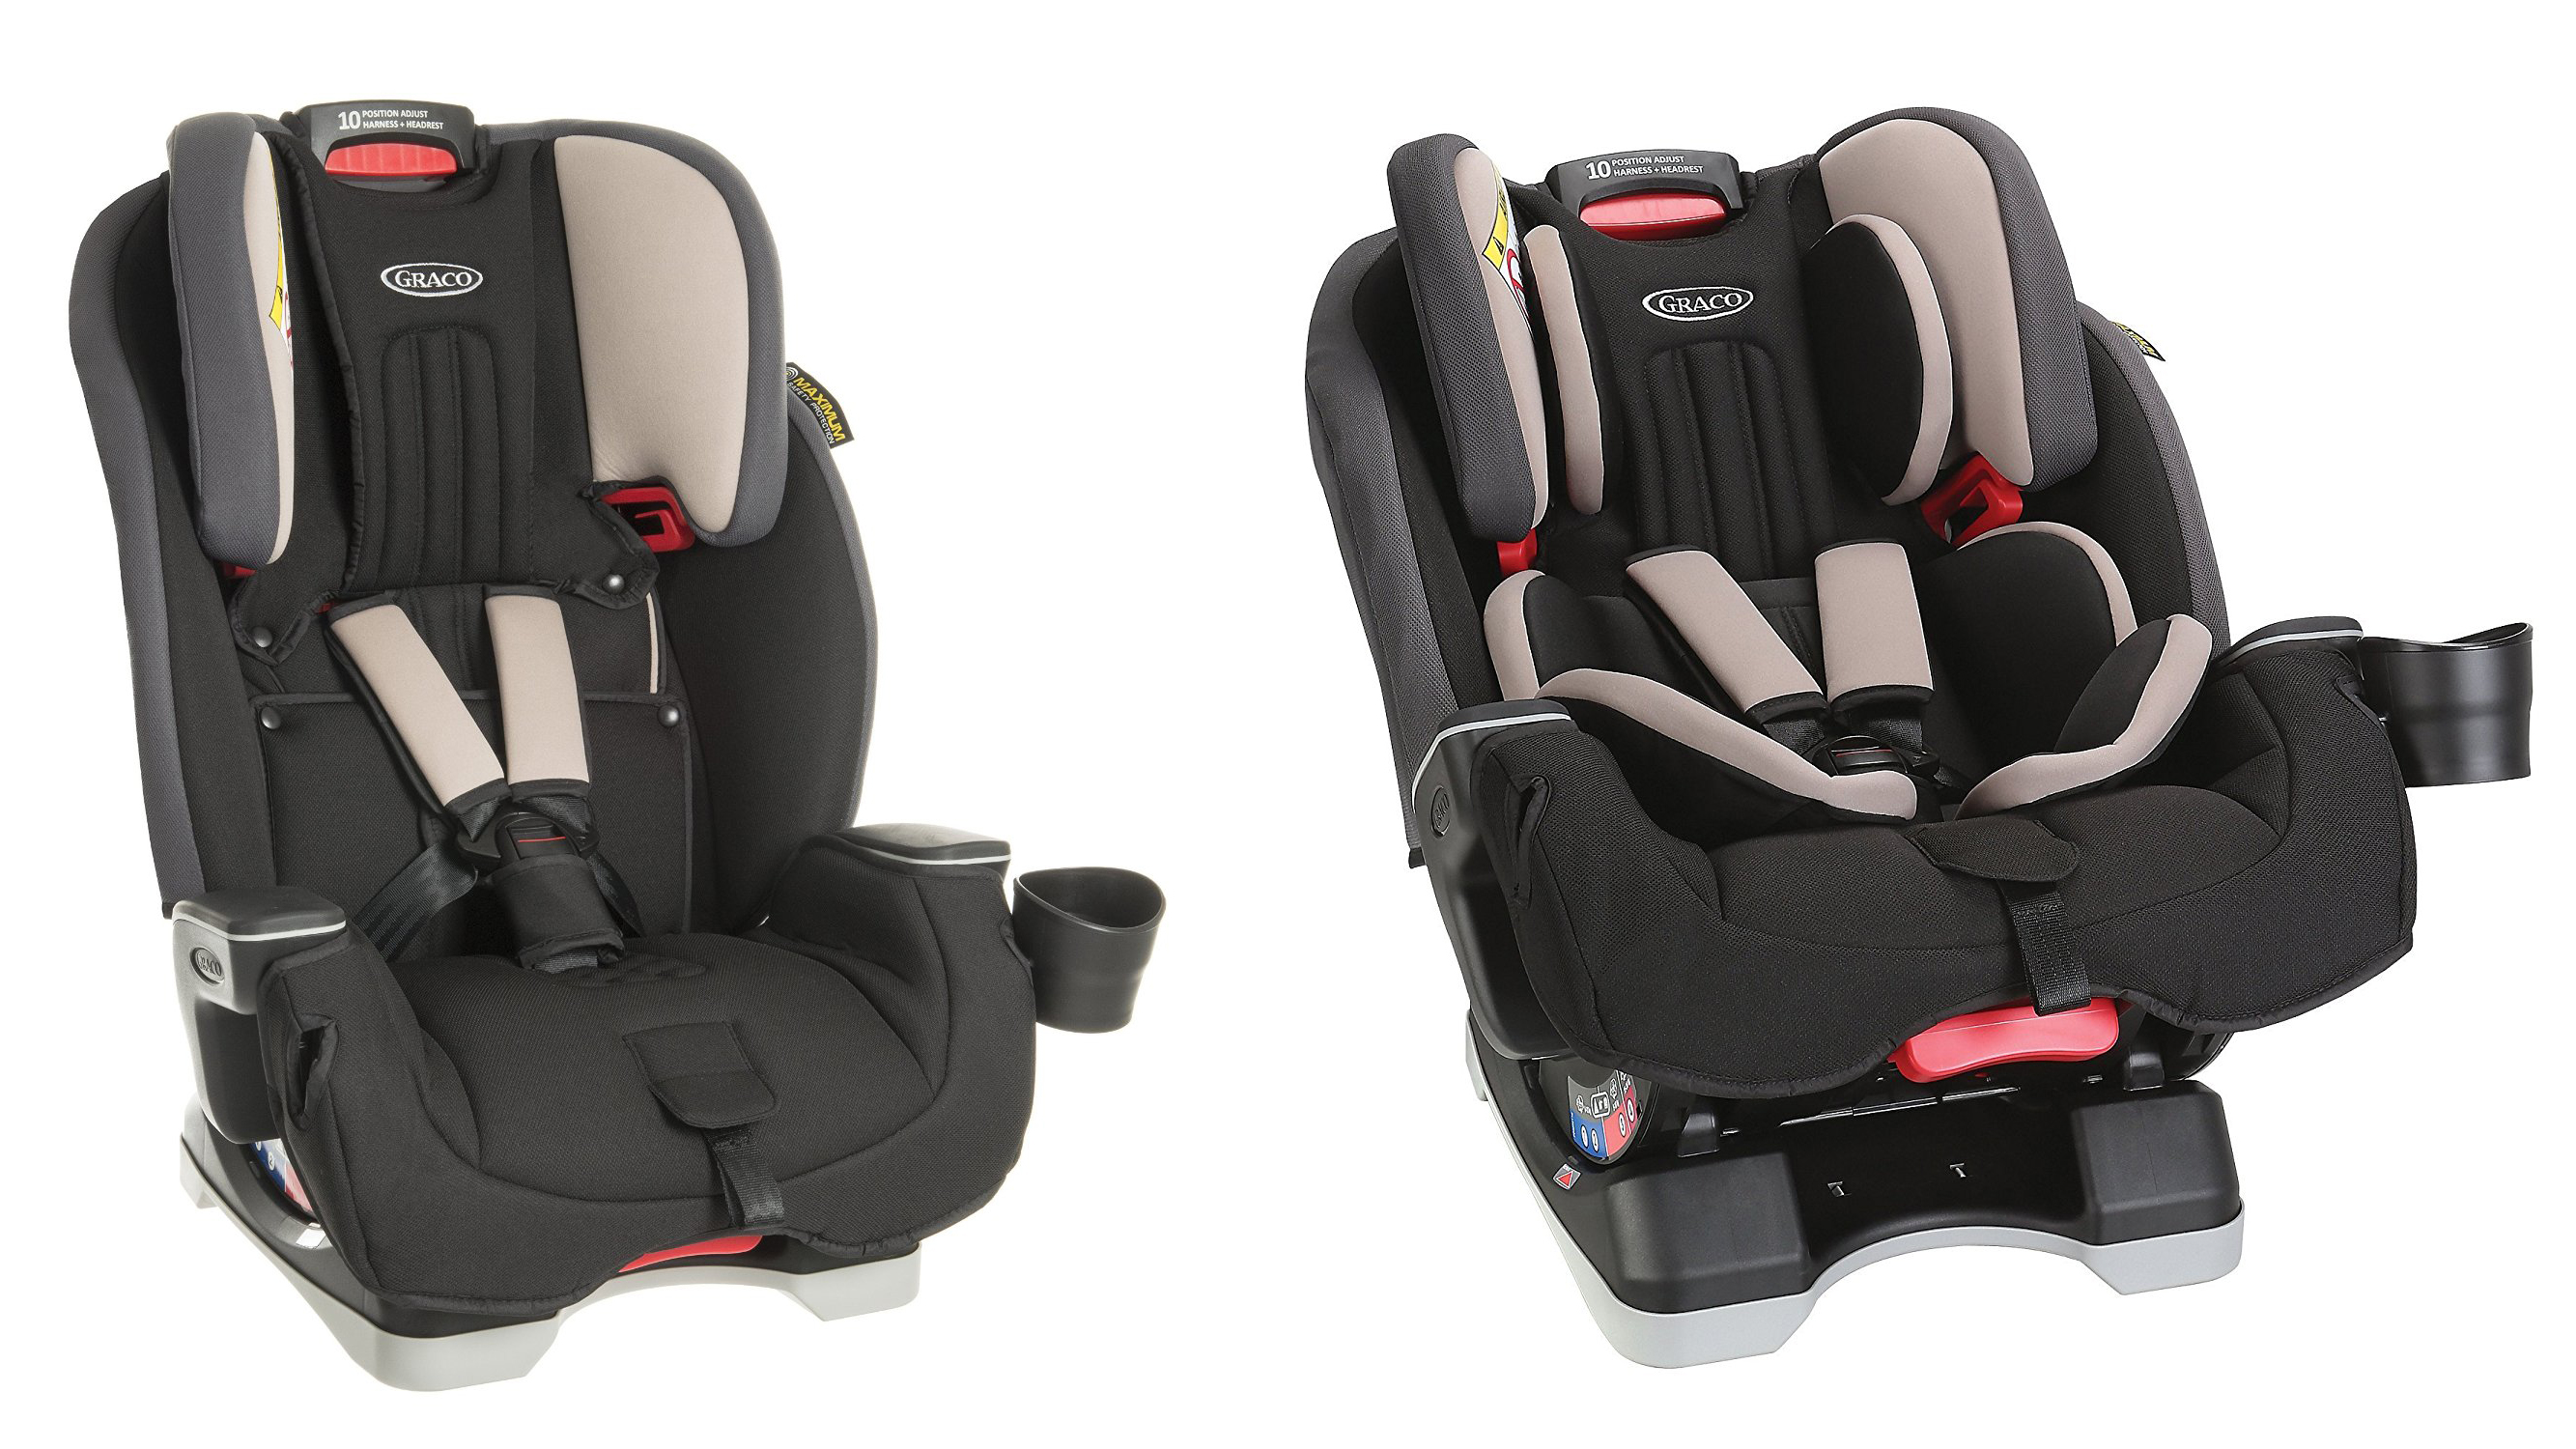 c0188e8b6fc Best car seats 2019  Discover which is the best baby car seat from ...